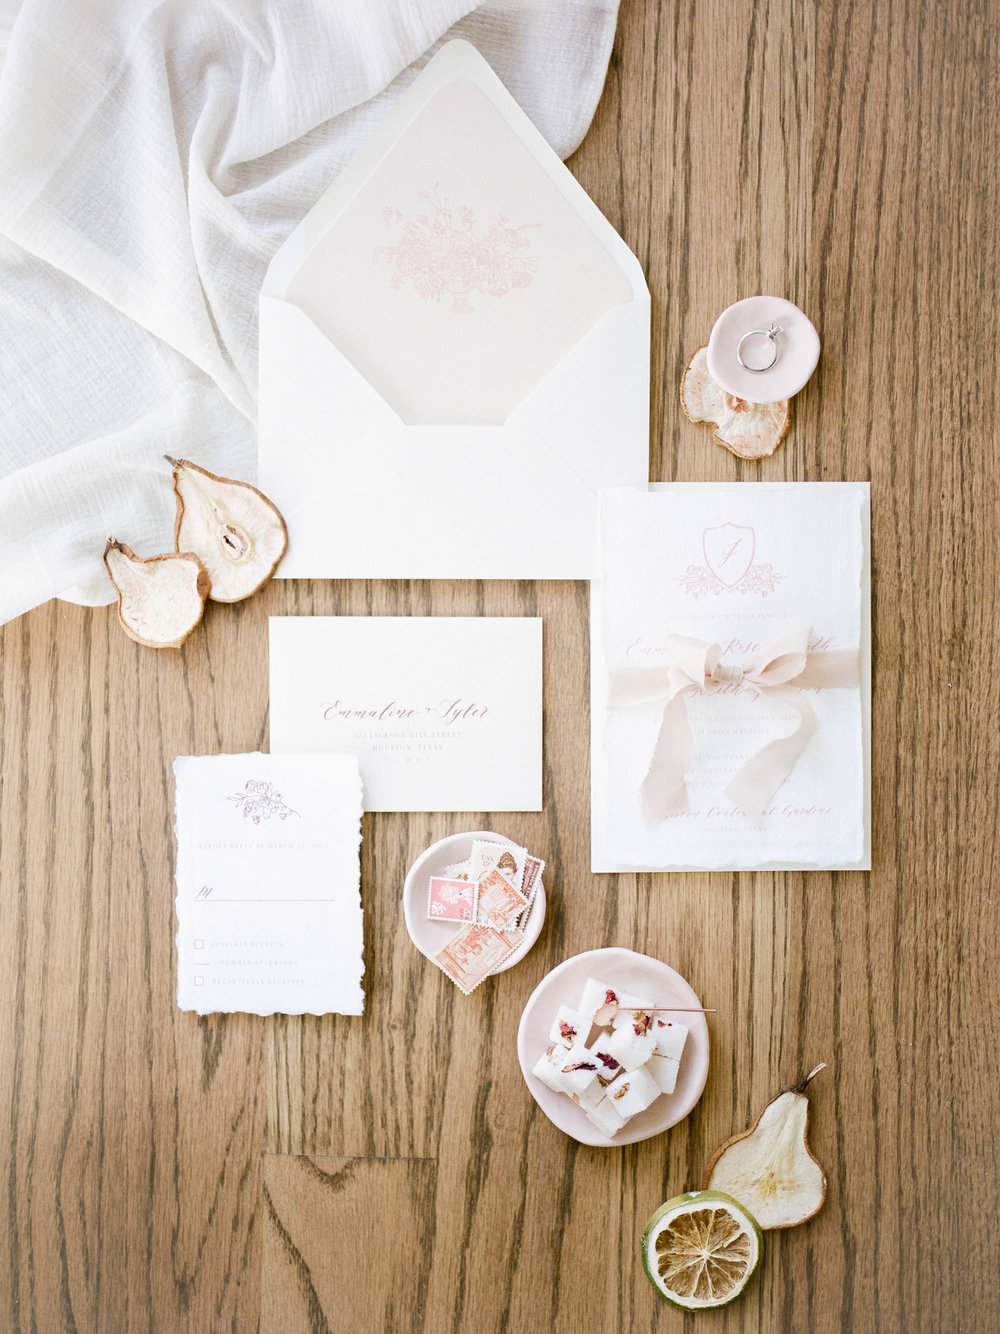 Dreams and Nostalgia Invitation Suite_Christine Gosch_OdeToJoyFlowers-30.jpg